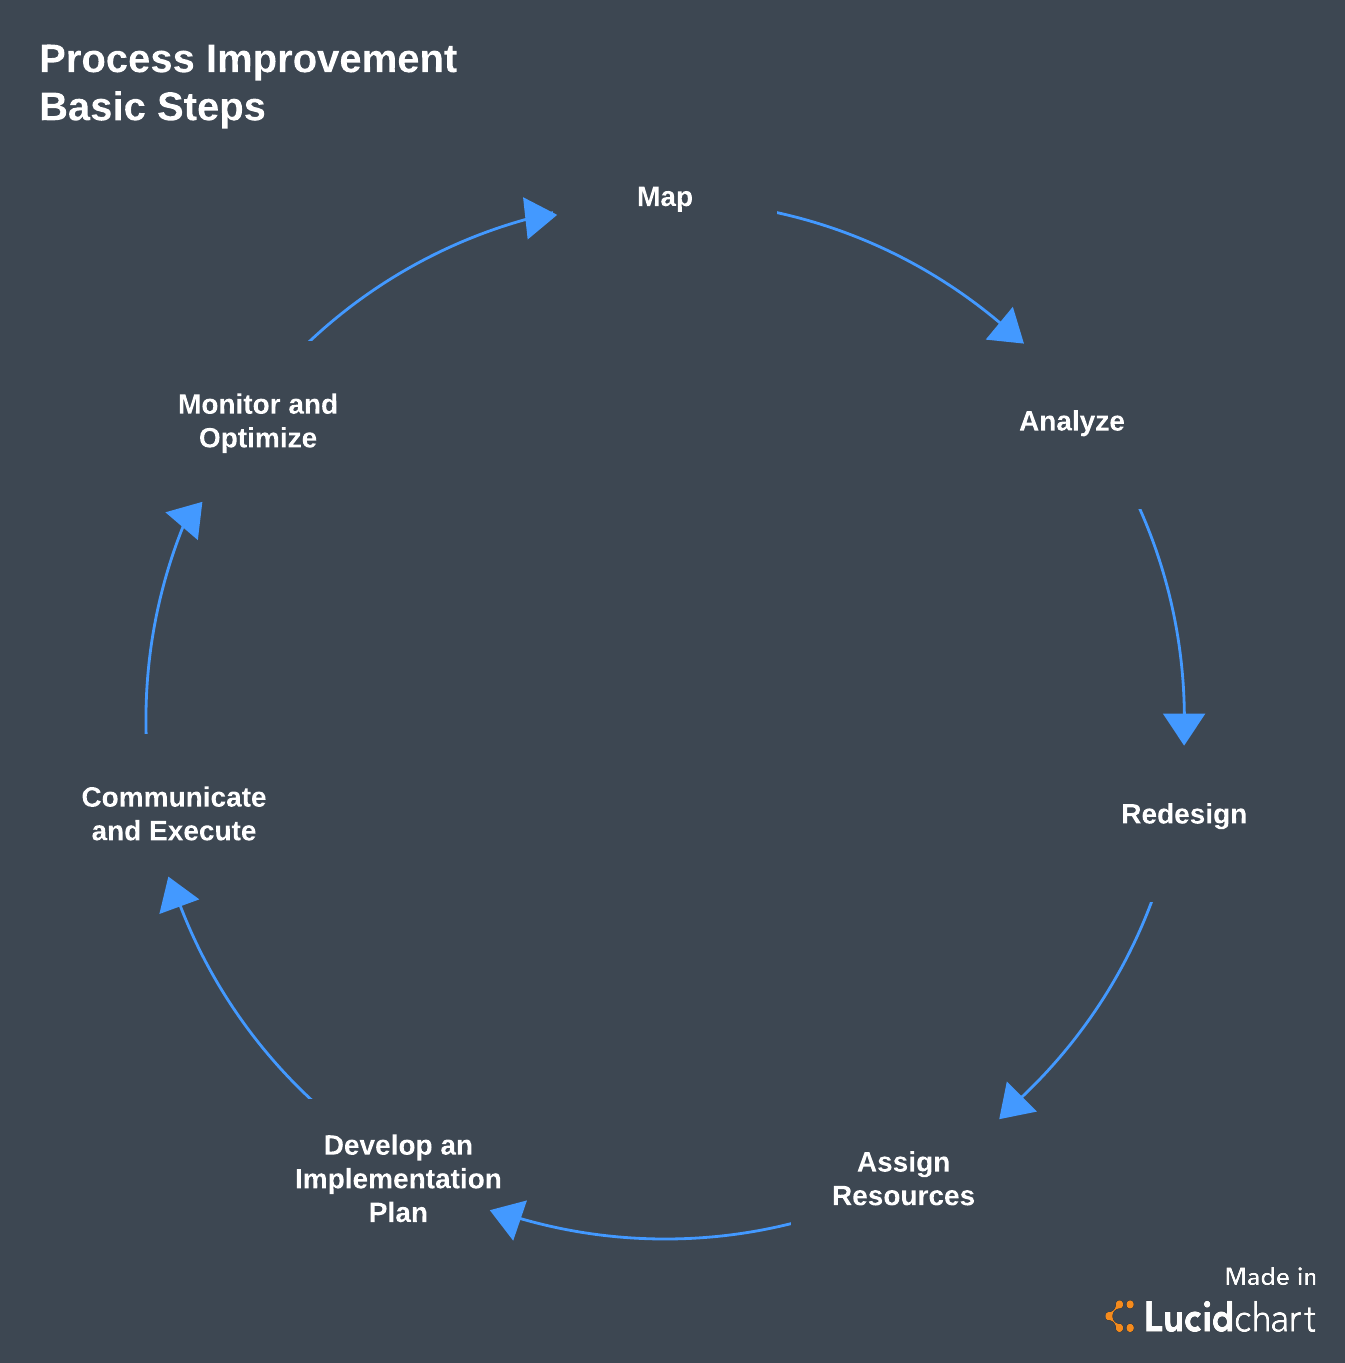 process improvement basic steps